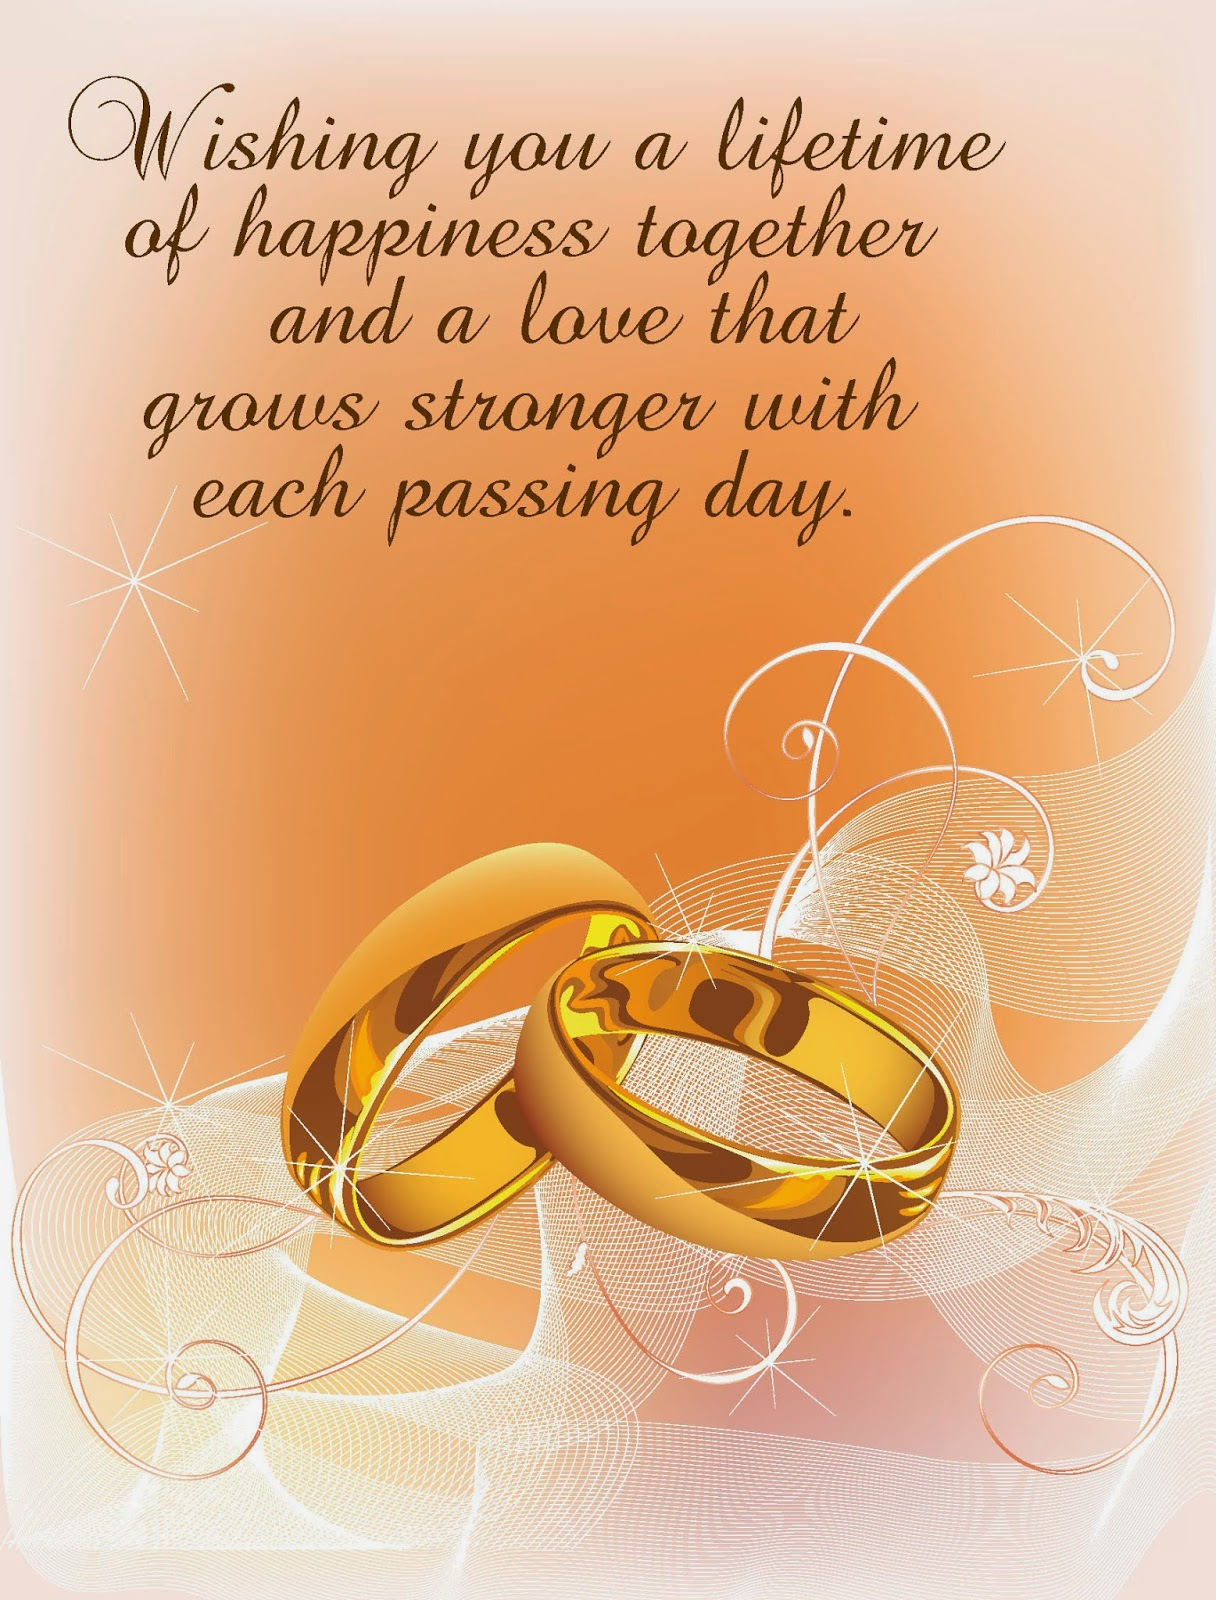 Love Text Messages Quotes Poems And Sms 20 Christian Wedding Message